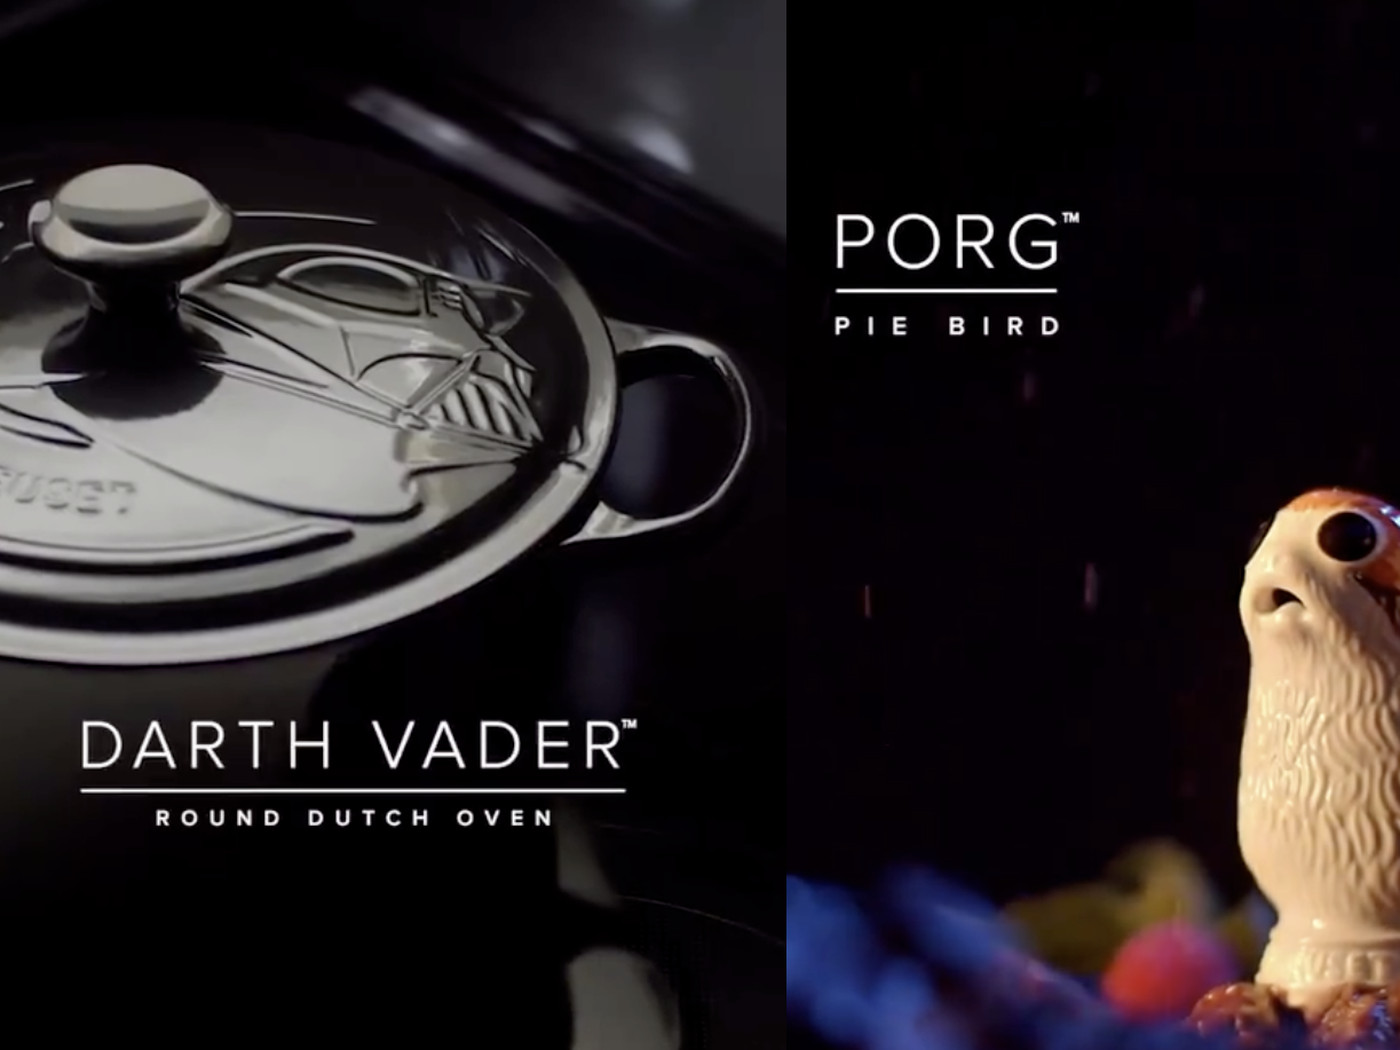 The Star Wars X Le Creuset Collection Features Darth Vader Dutch